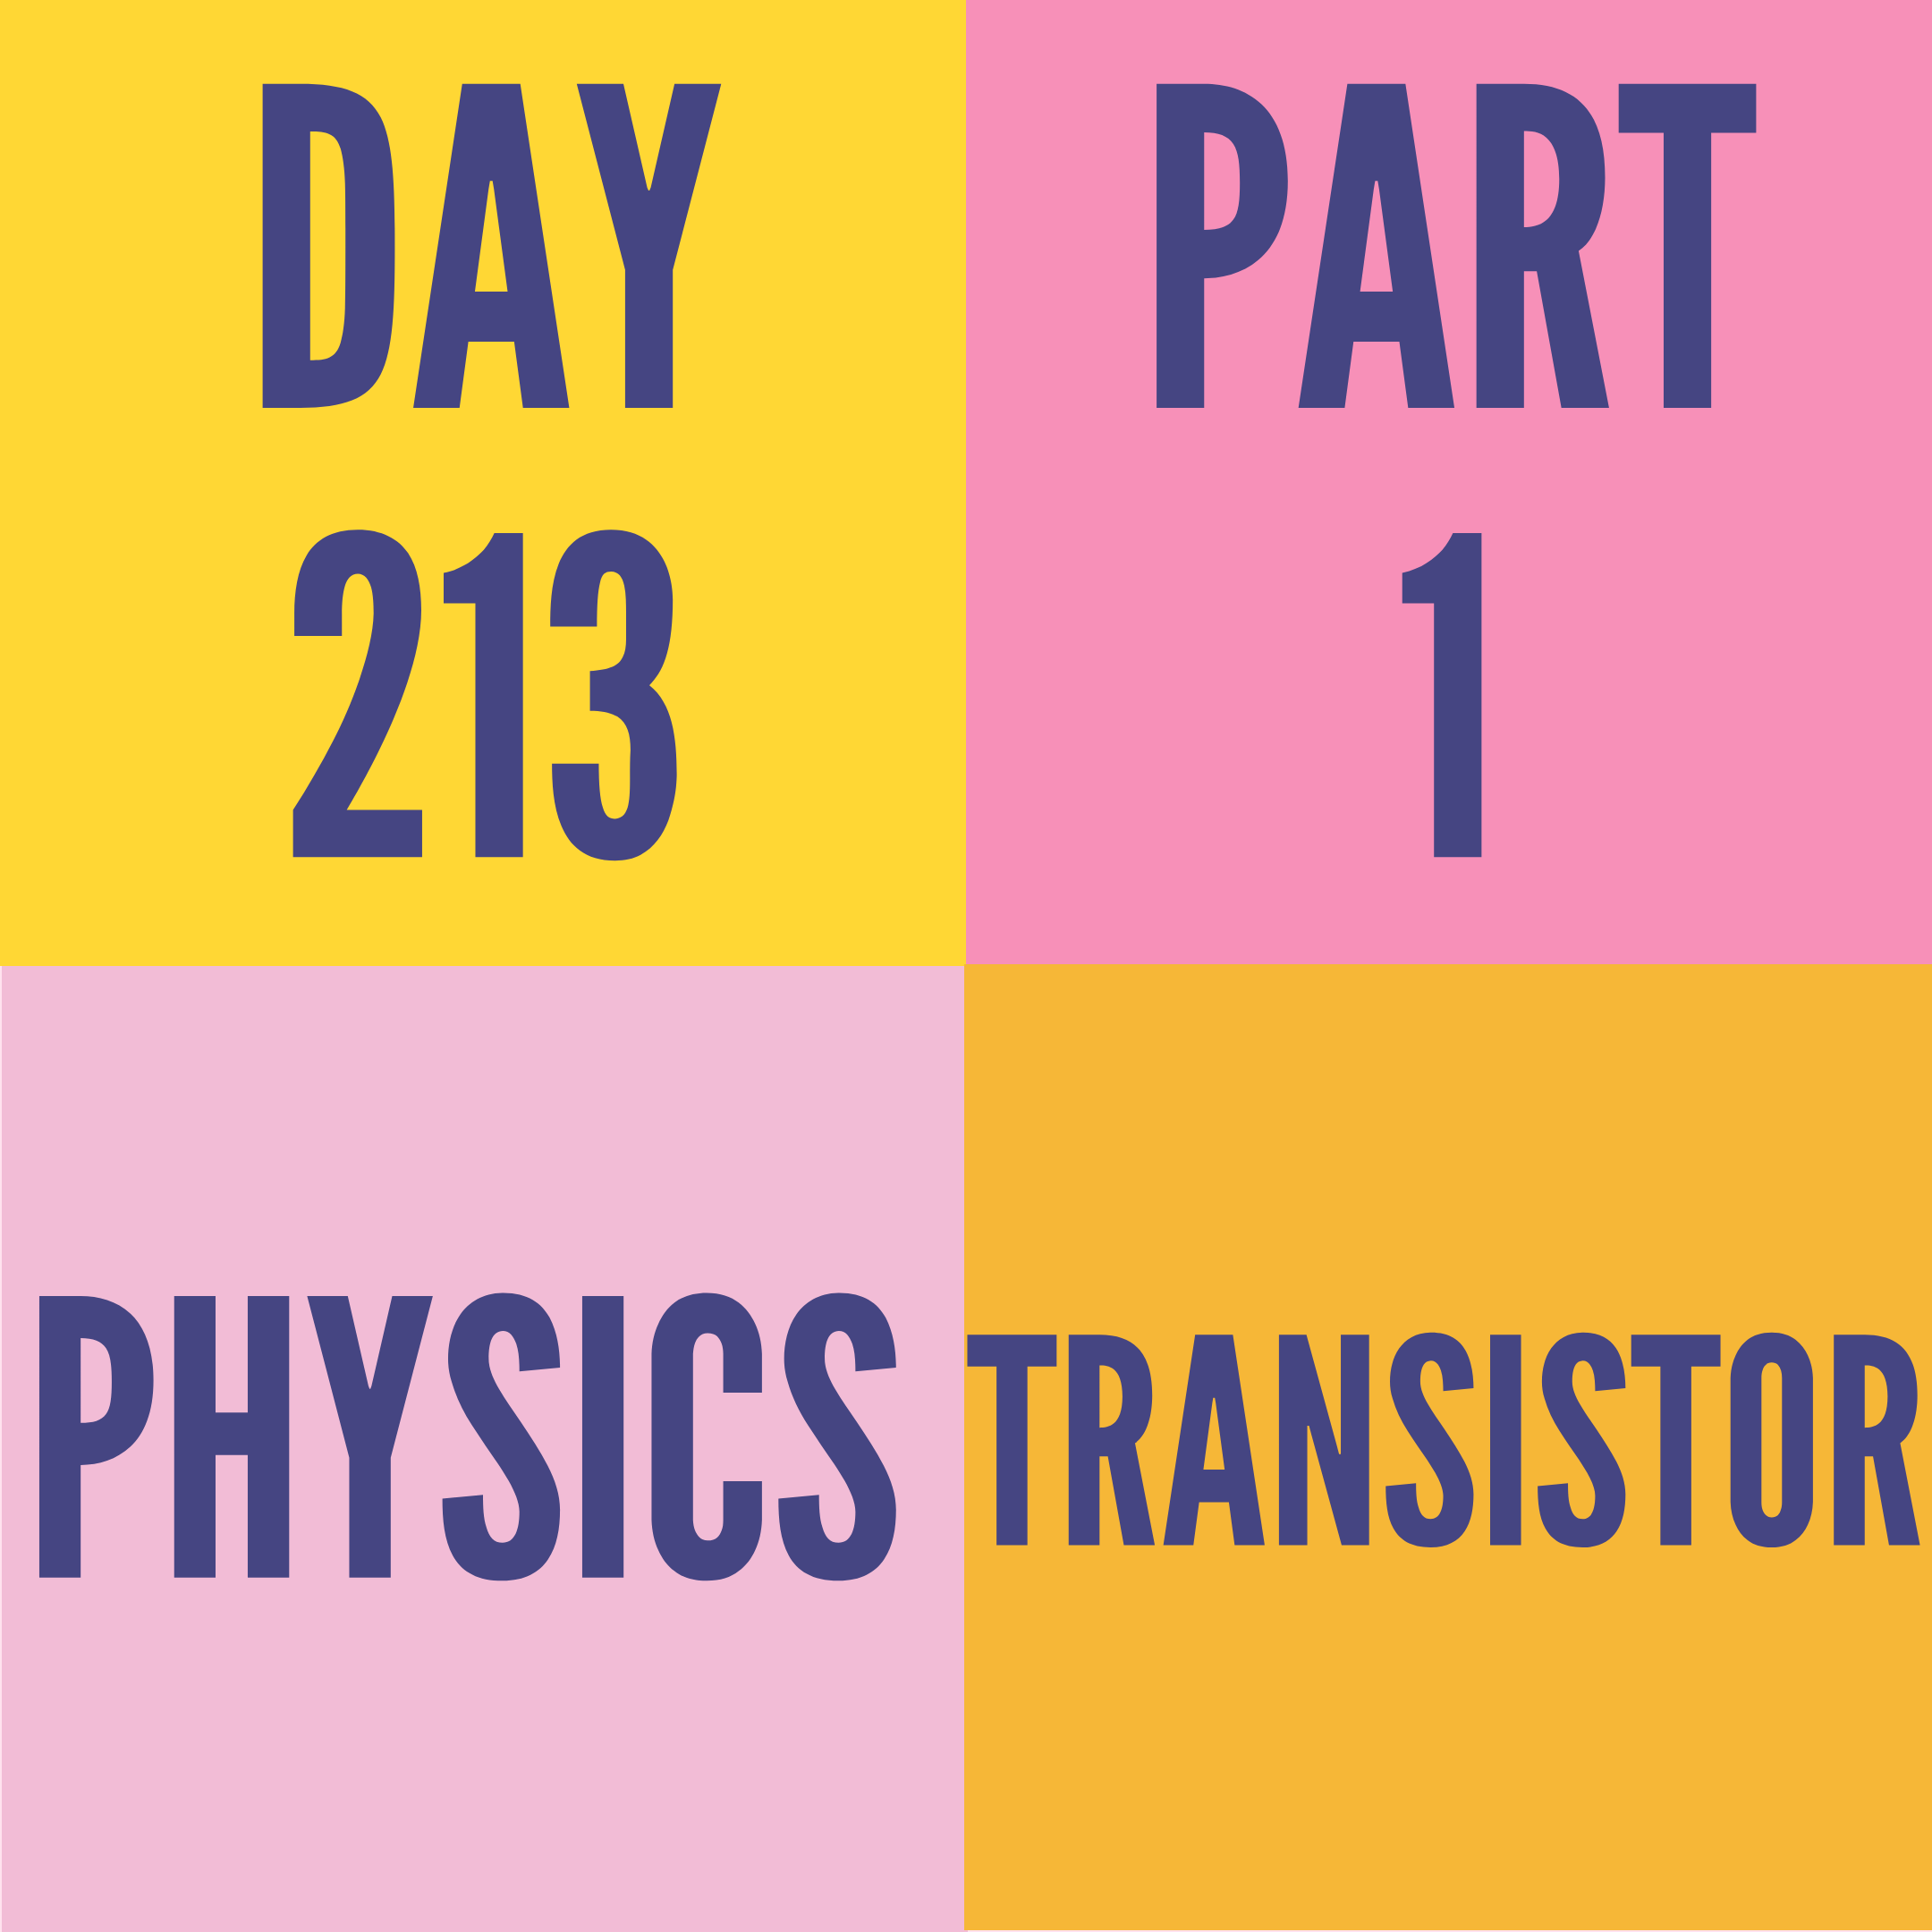 DAY-213 PART-1 TRANSISTOR